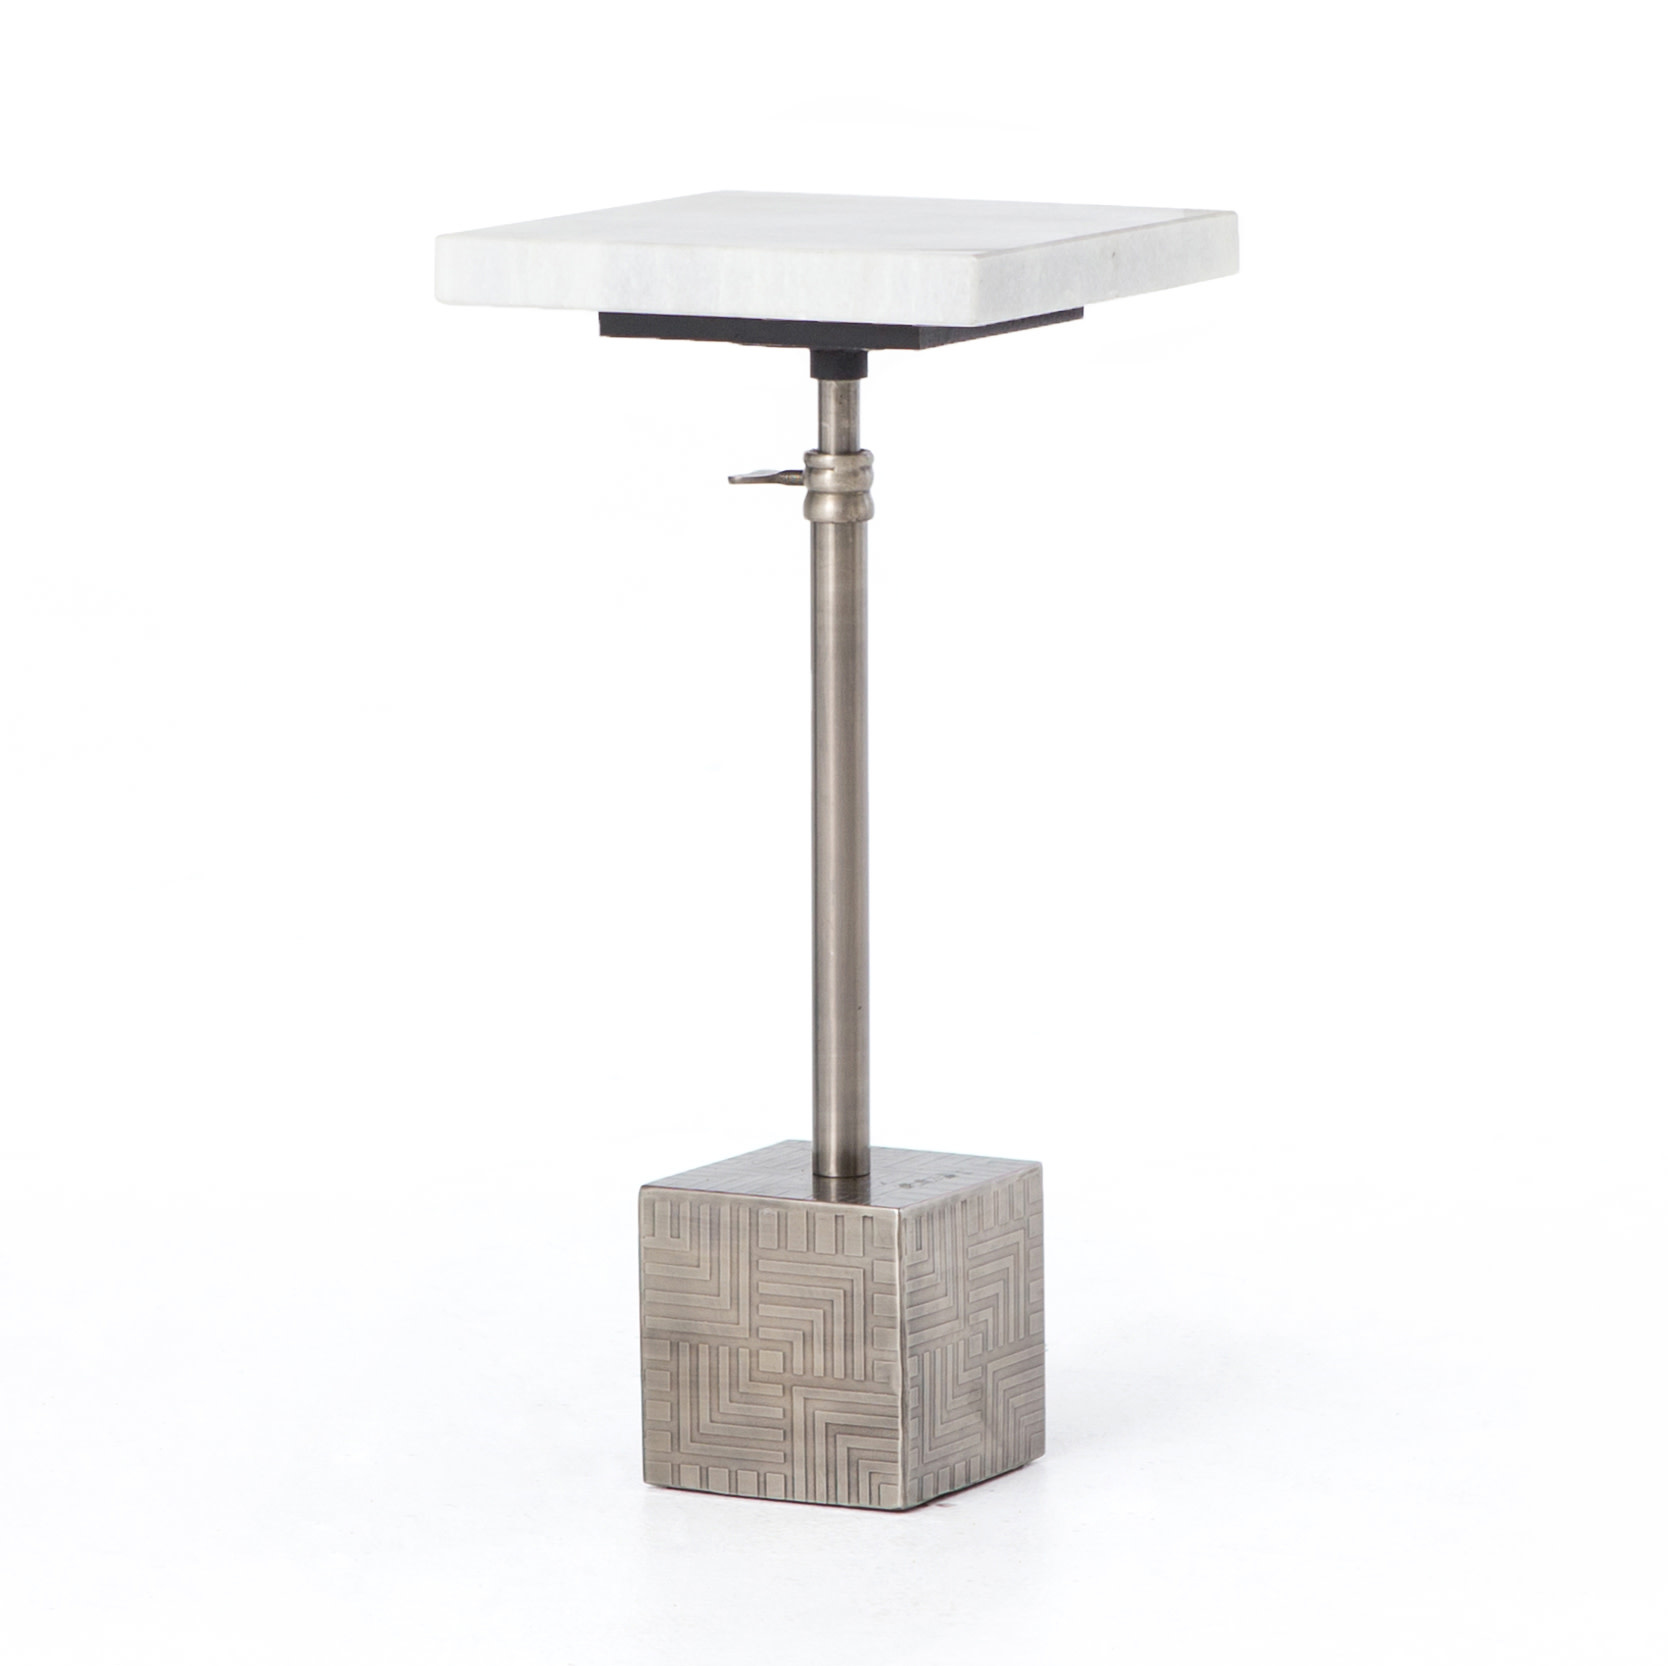 SIRIUS ADJUSTABLE TABLE - GUNMETAL